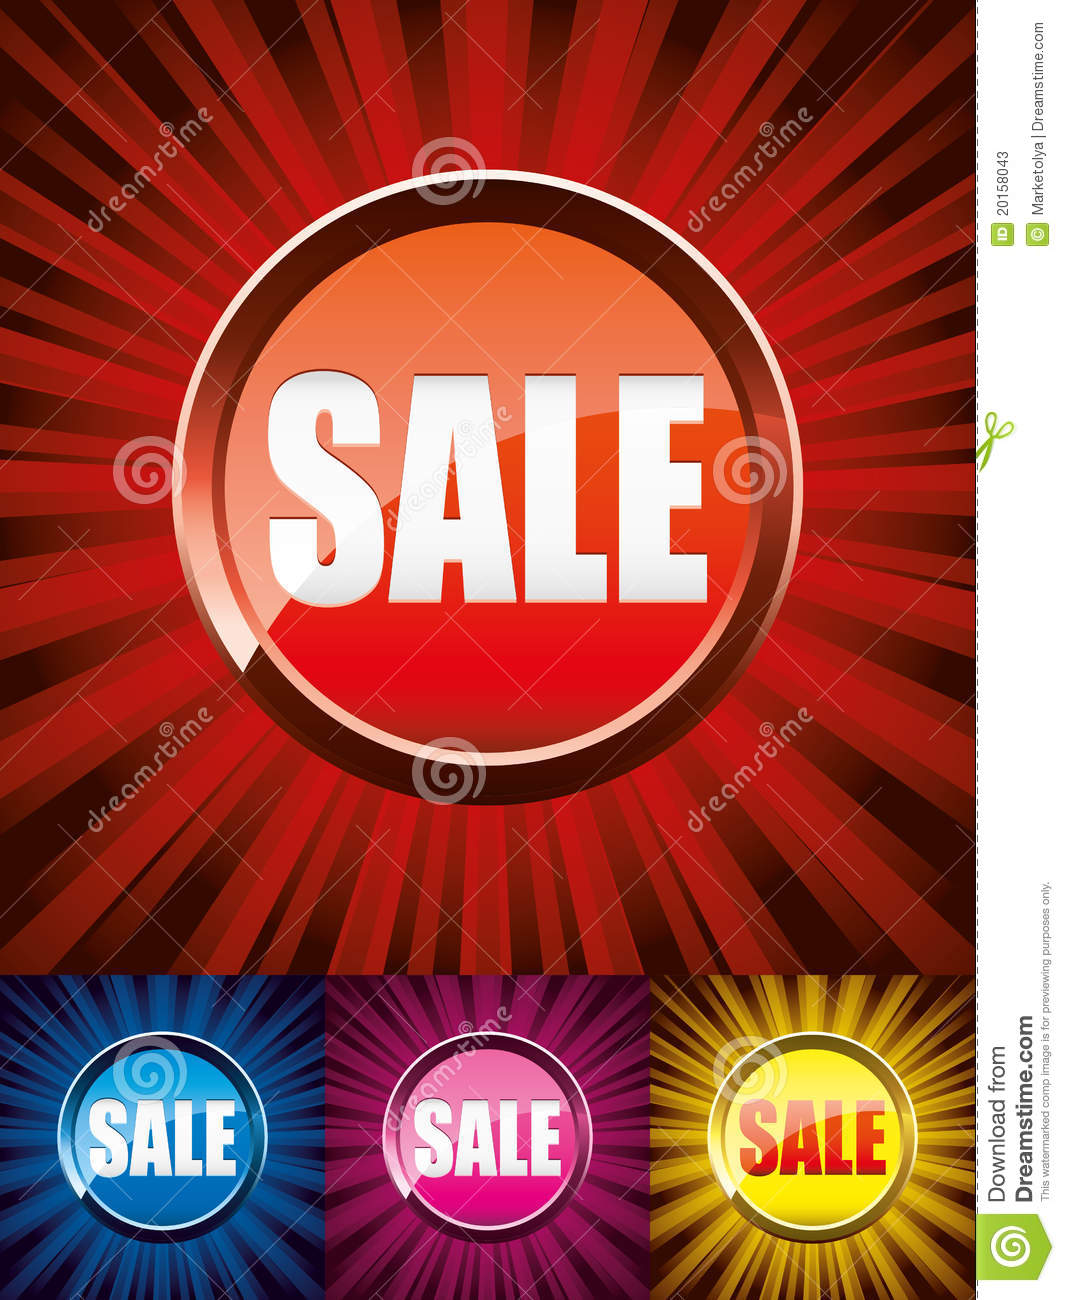 Sey of sale buttons